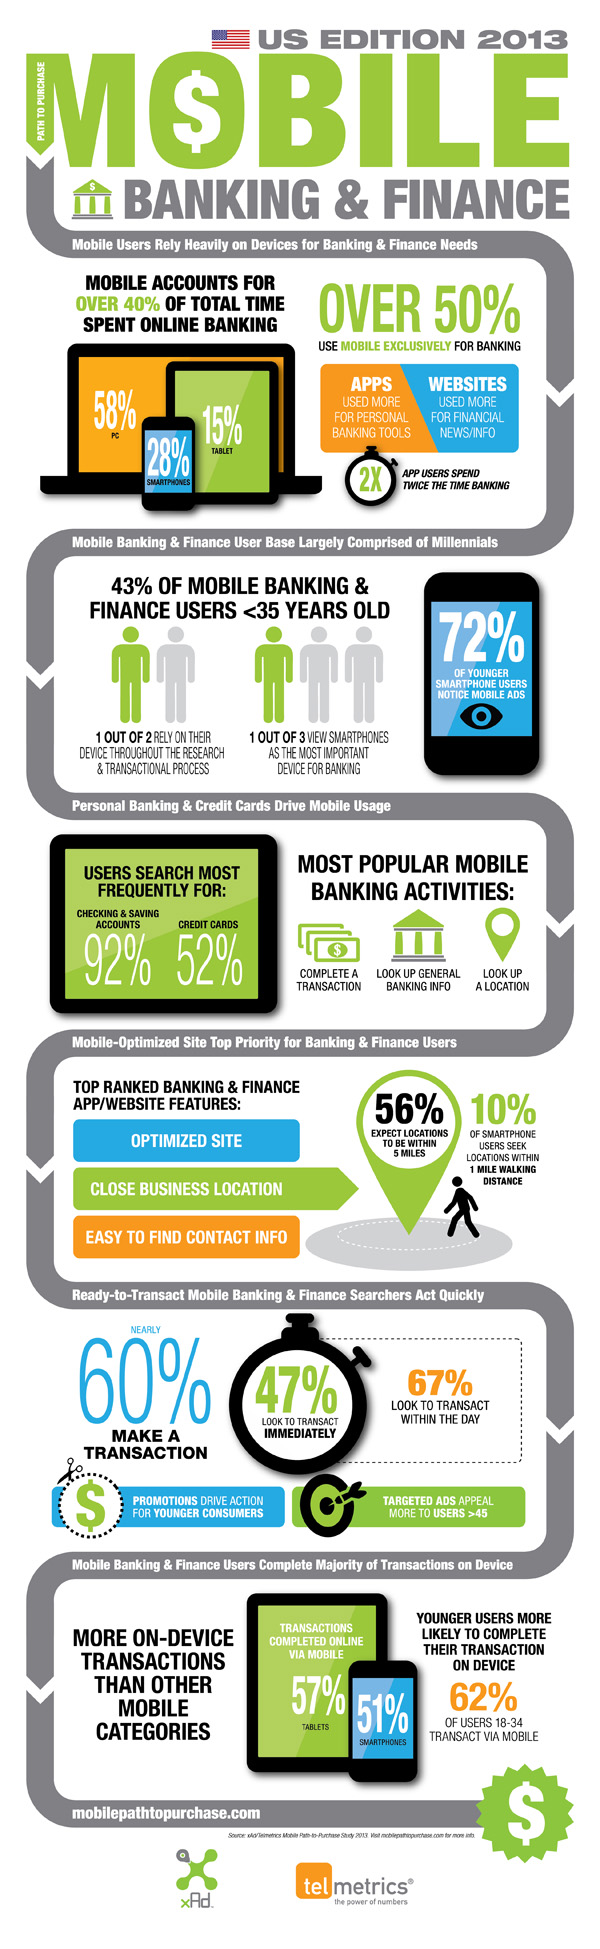 14. What is Mobile Banking?